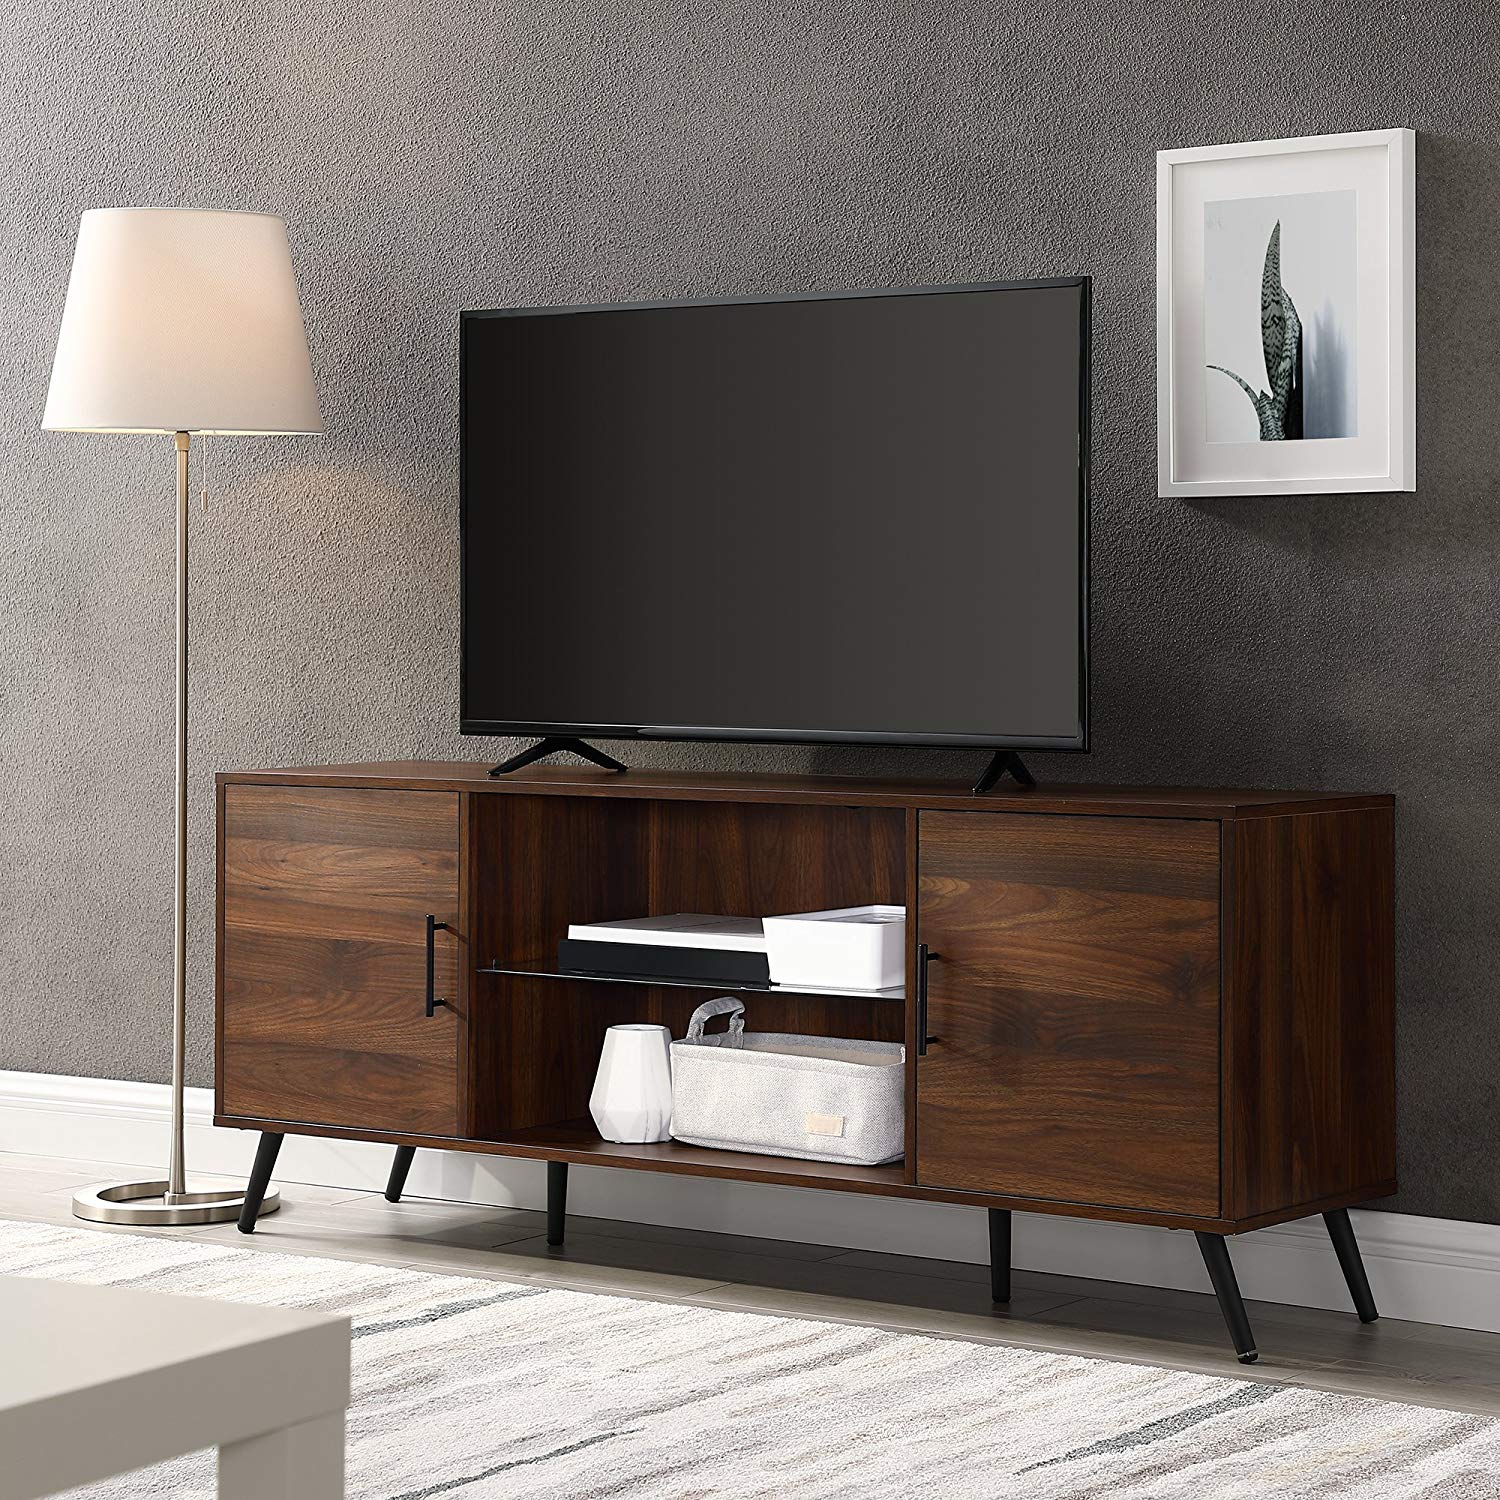 "WE Furniture AZ60NOR2DDW TV Stand, 60"", Dark Walnut - Living room"